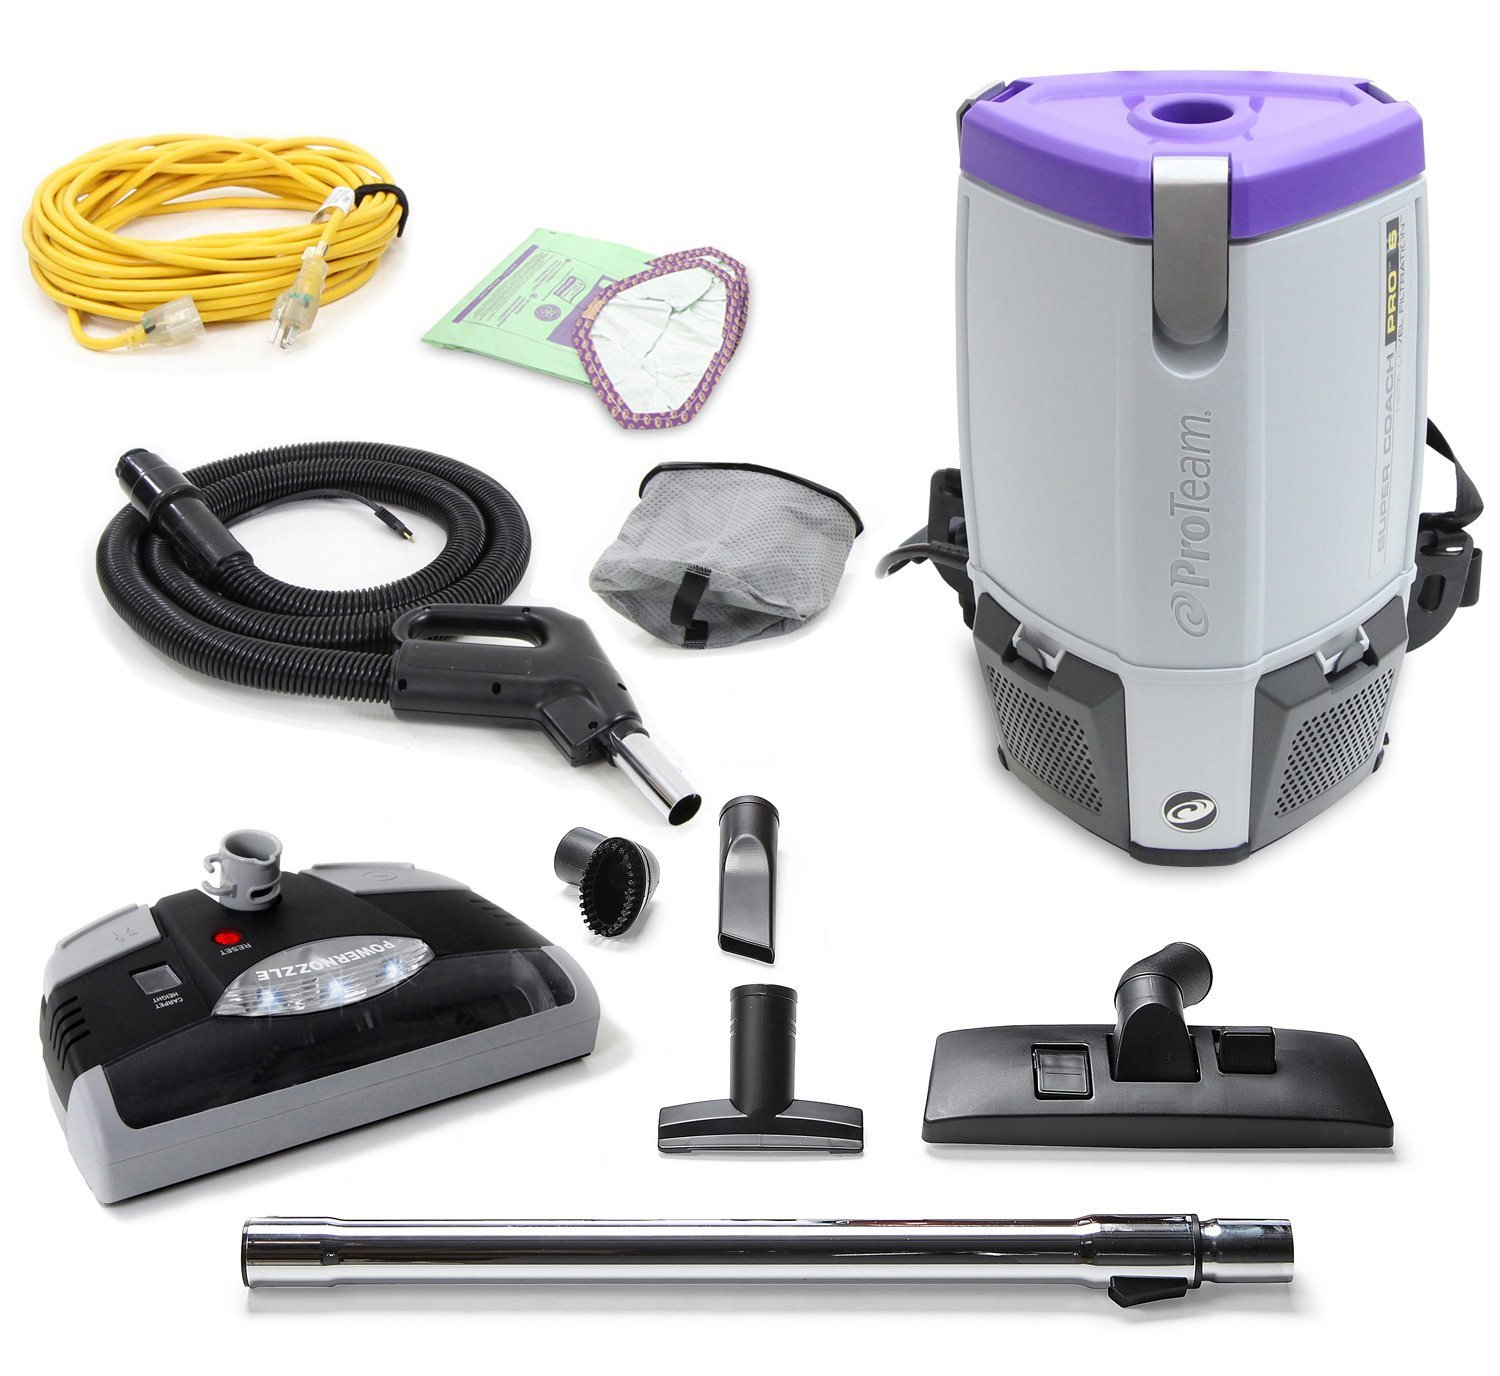 ProTeam ProVac Super Coach Pro 6 QT Vacuum Cleaner with Power Head by ProTeam